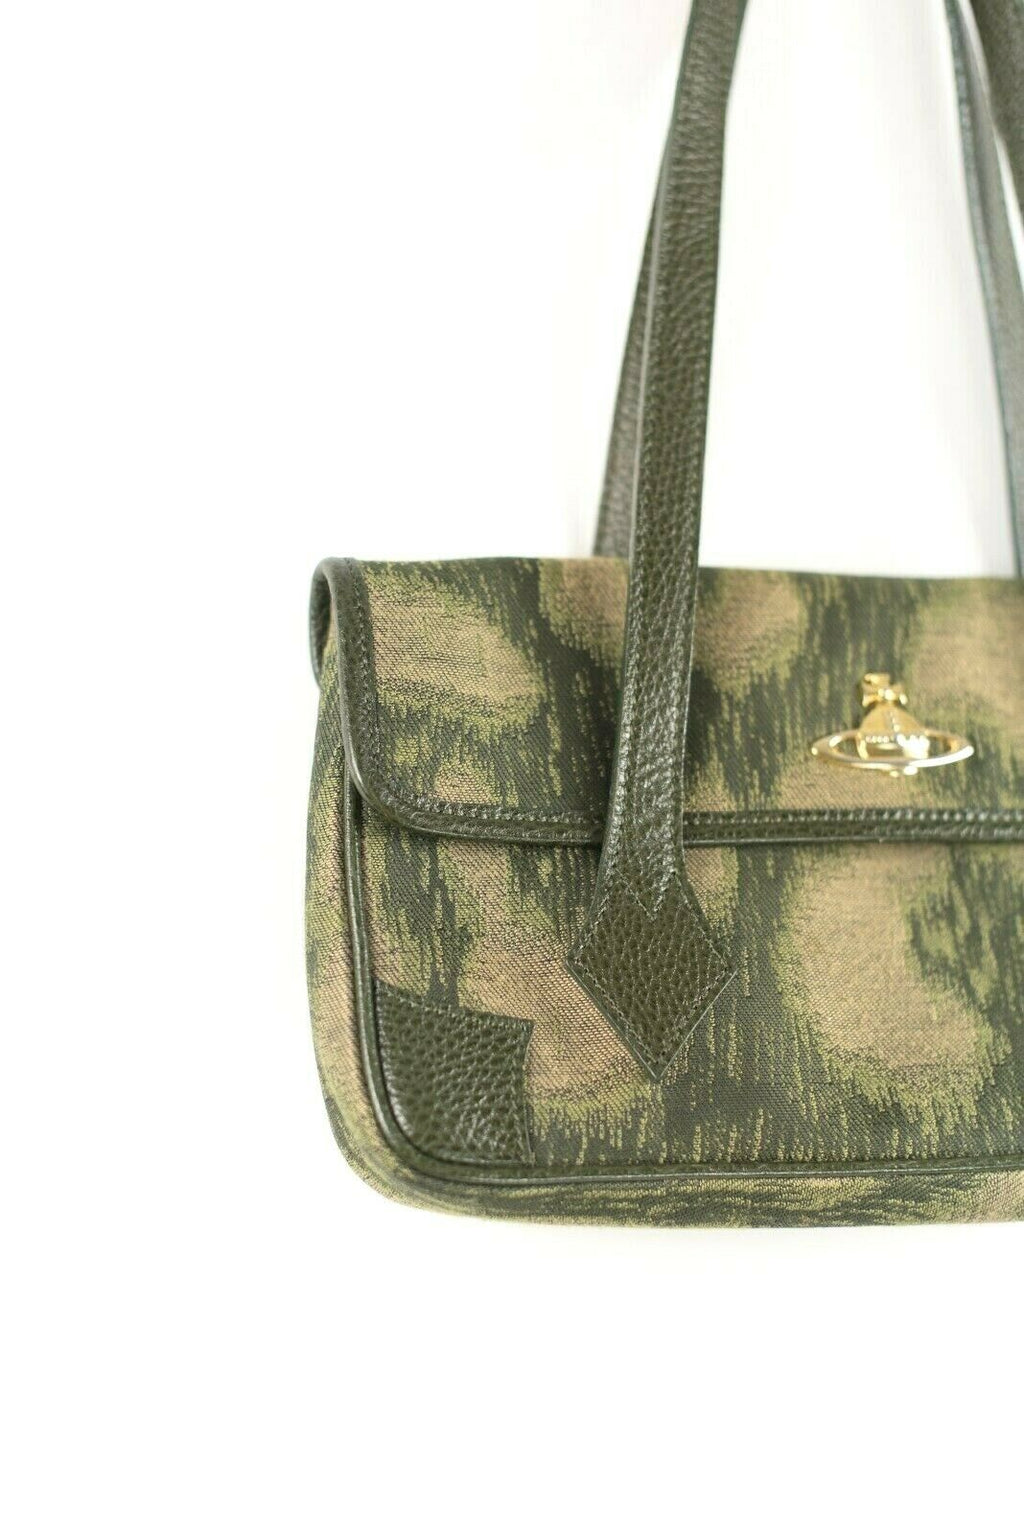 Vivienne Westwood Womans Green Handbag Vintage Fabric Flap Shoulder Bag Purse